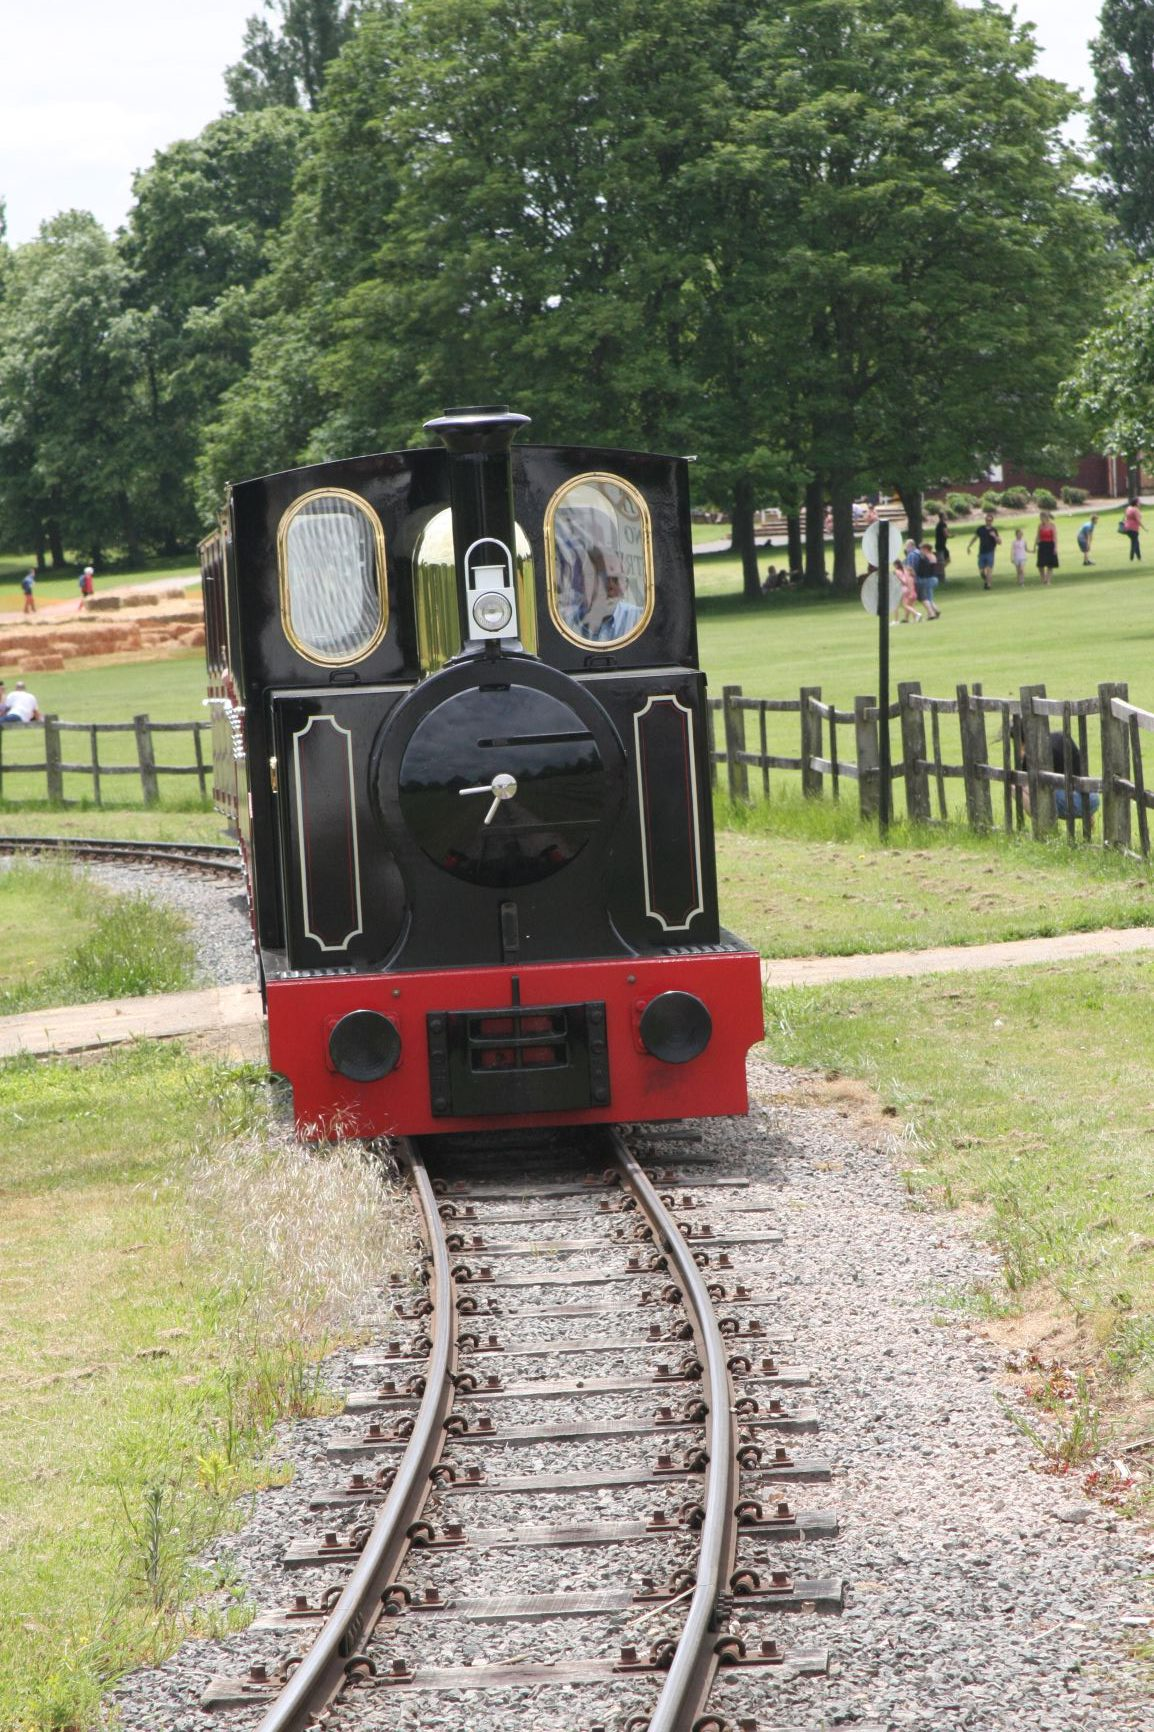 Wicksteed Train